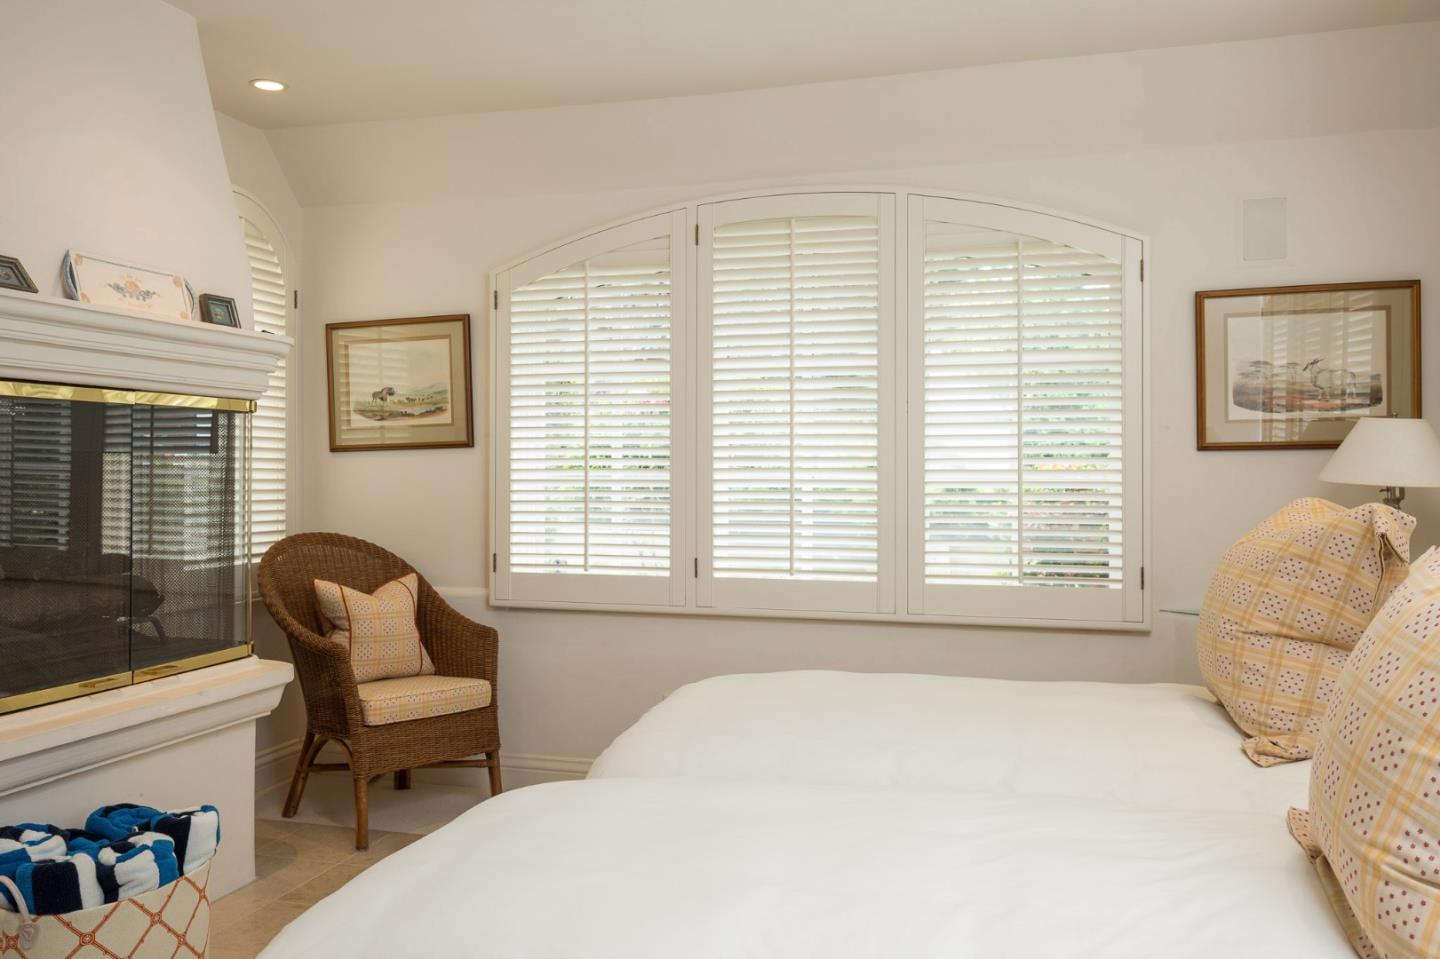 Storybook cottage in Carmel Ca for sale - Bedroom